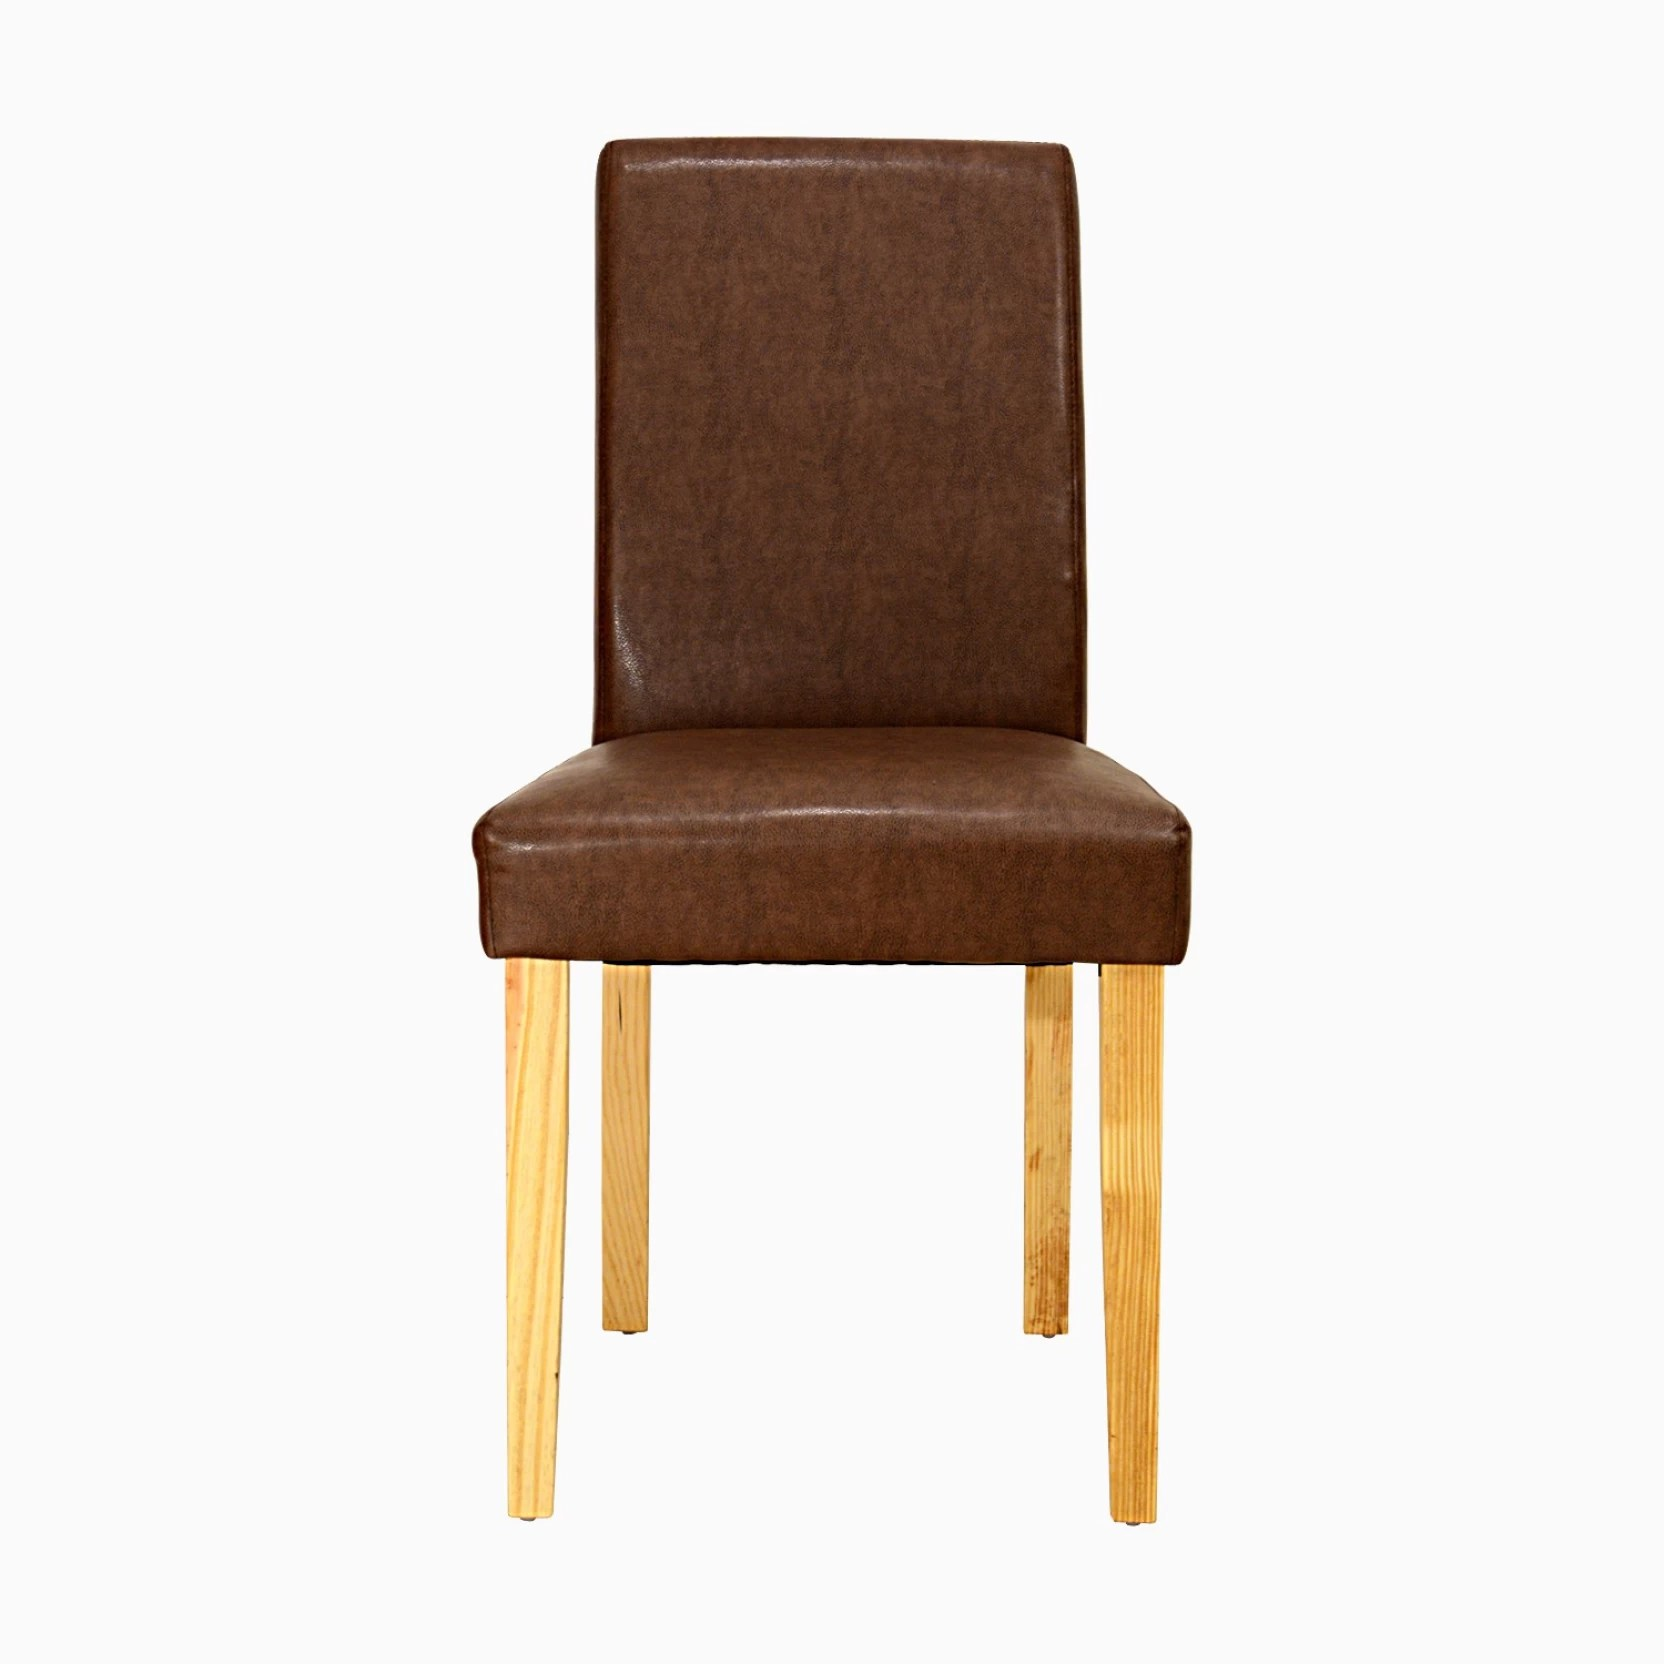 Bettsofa Interio Ch Godrej Interio Sparta Dining Chair Solid Wood Dining Chair Price